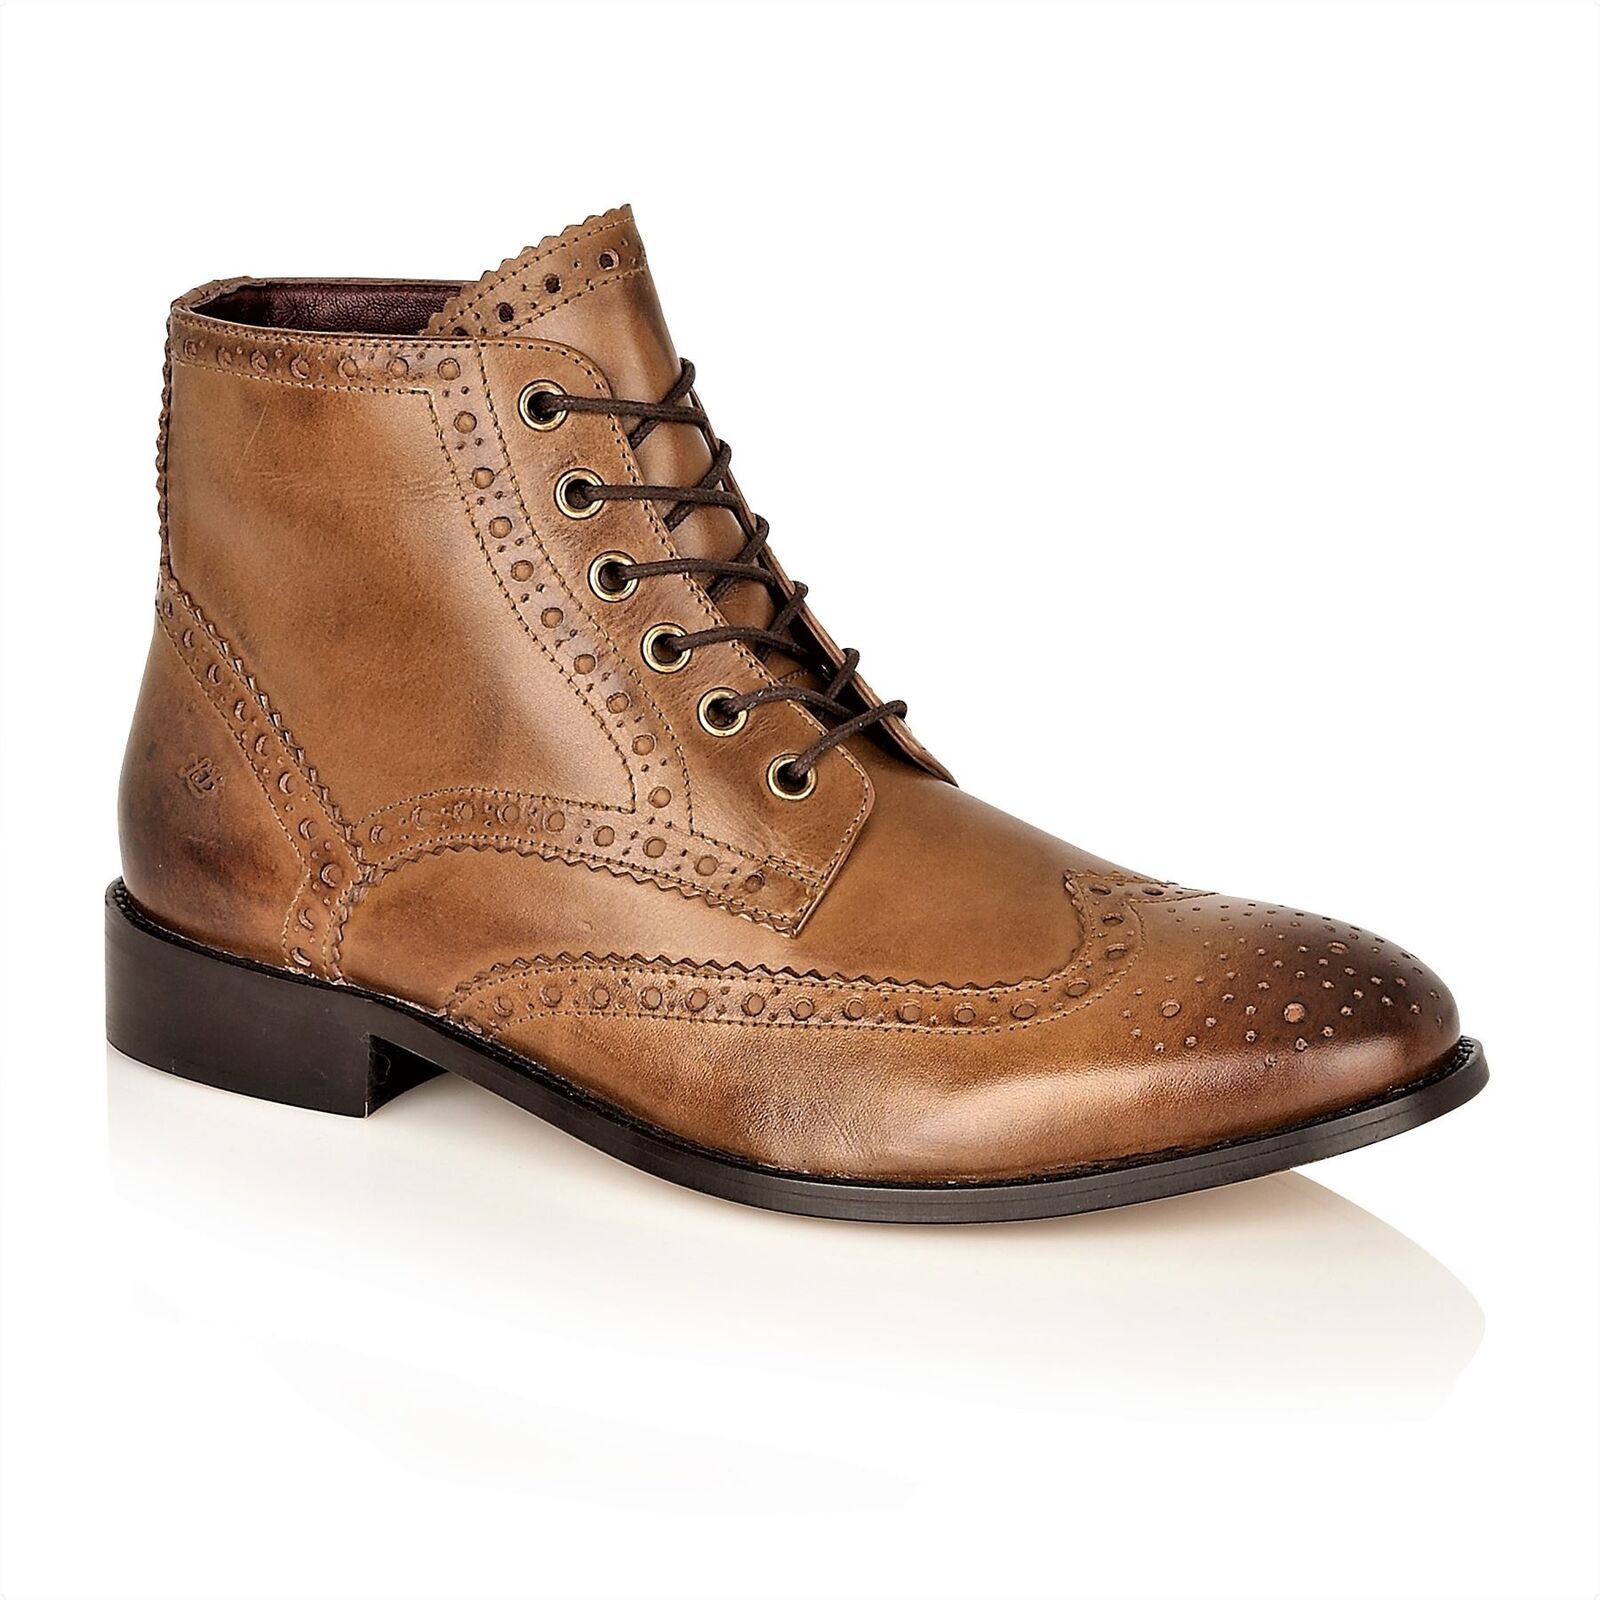 London Brogues Gatsby HI Lace Up Formal Mens Leather Boots Chestnut